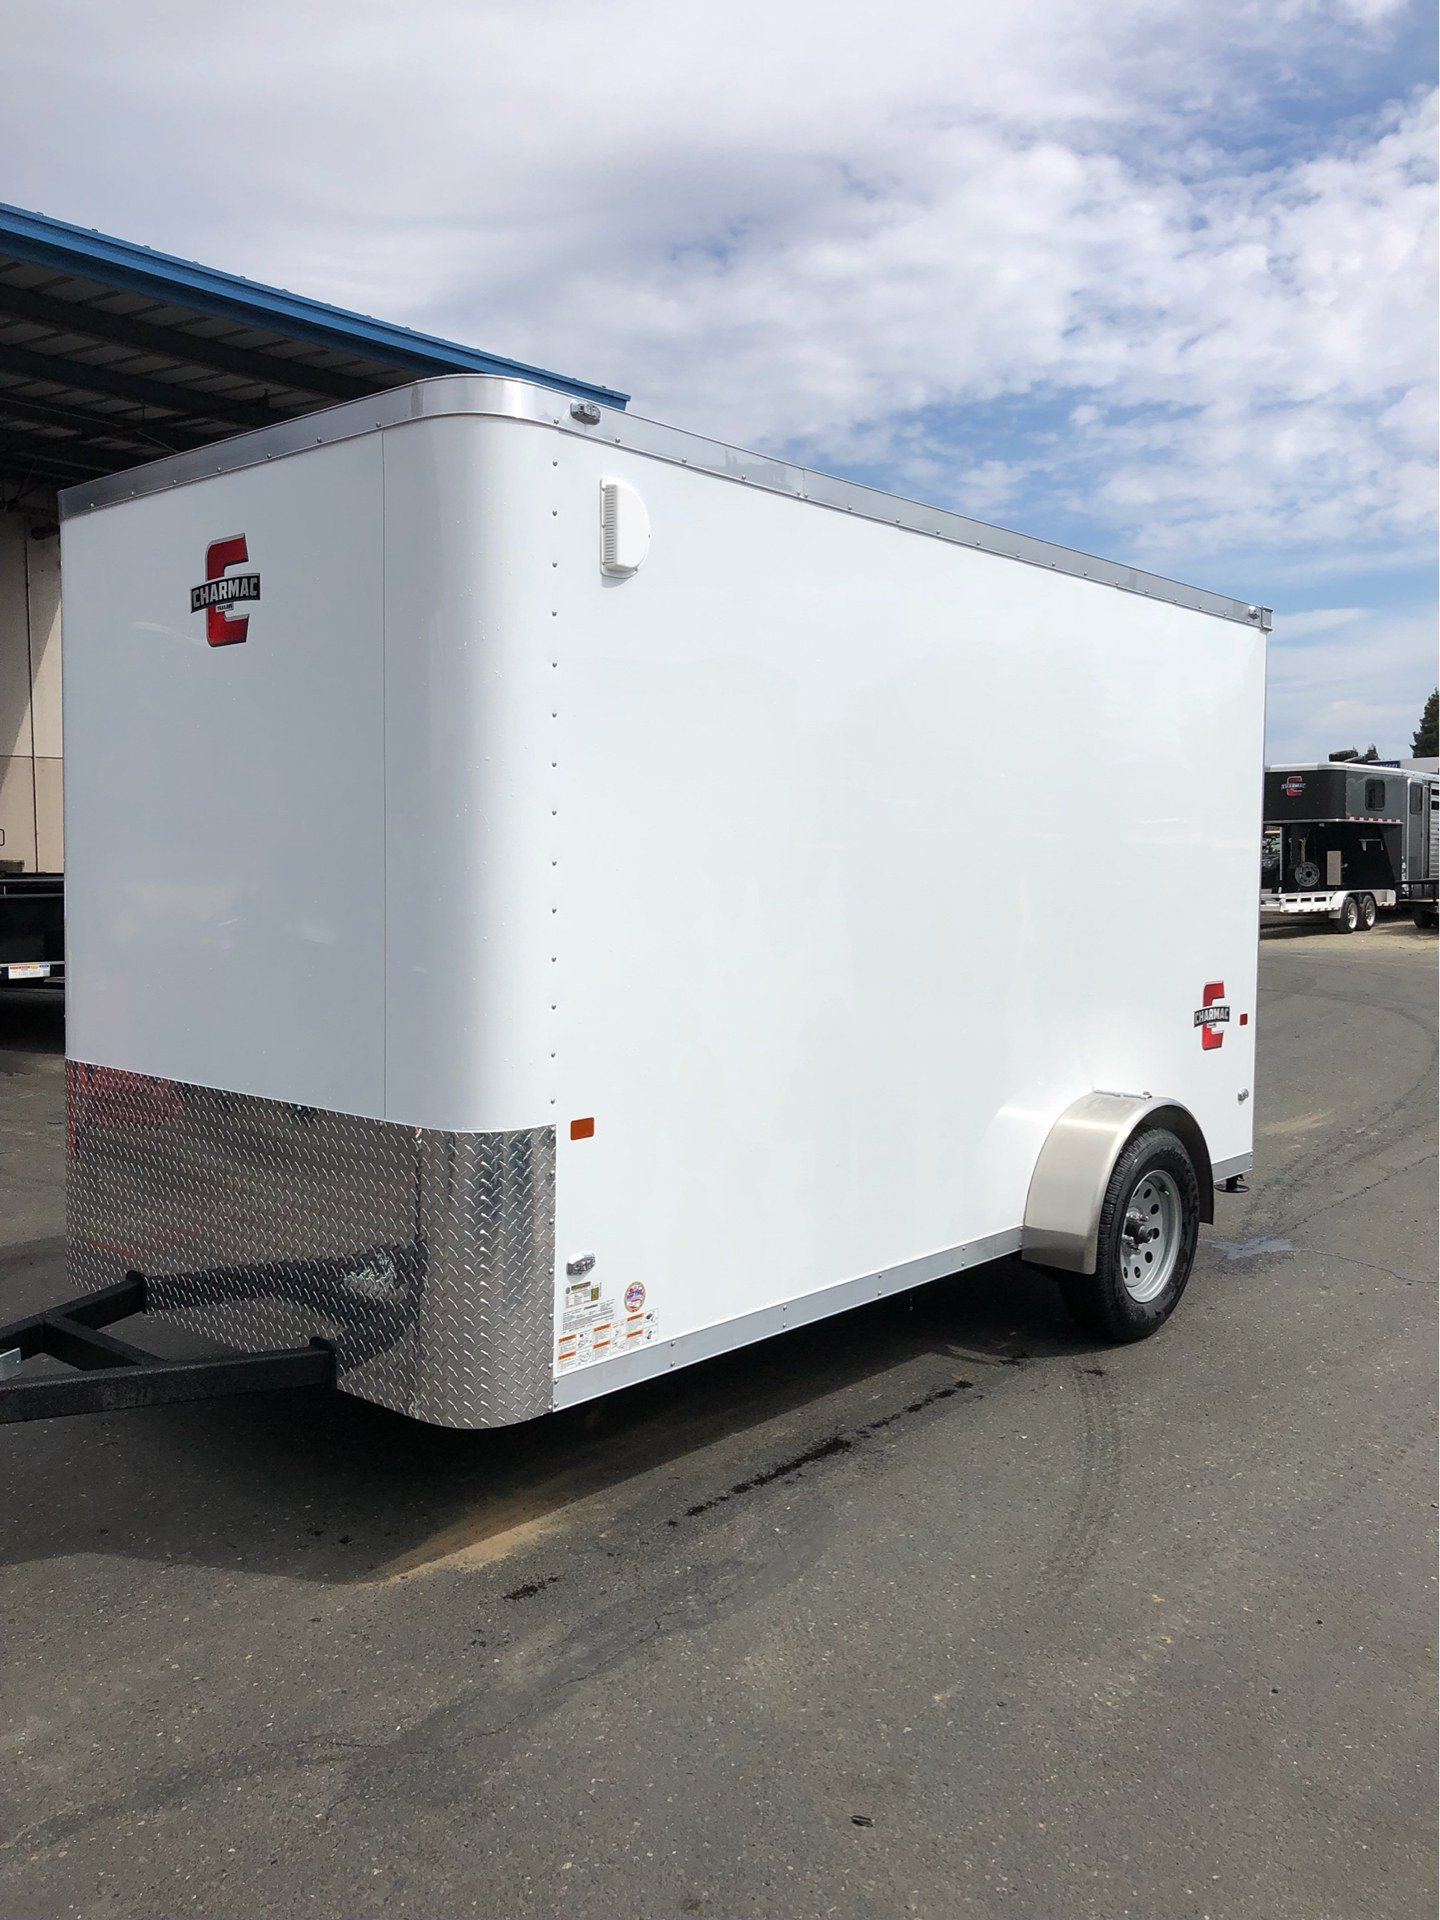 2020 Charmac Trailers 10' X 6' STEALTH CARGO TRAILER in Elk Grove, California - Photo 1